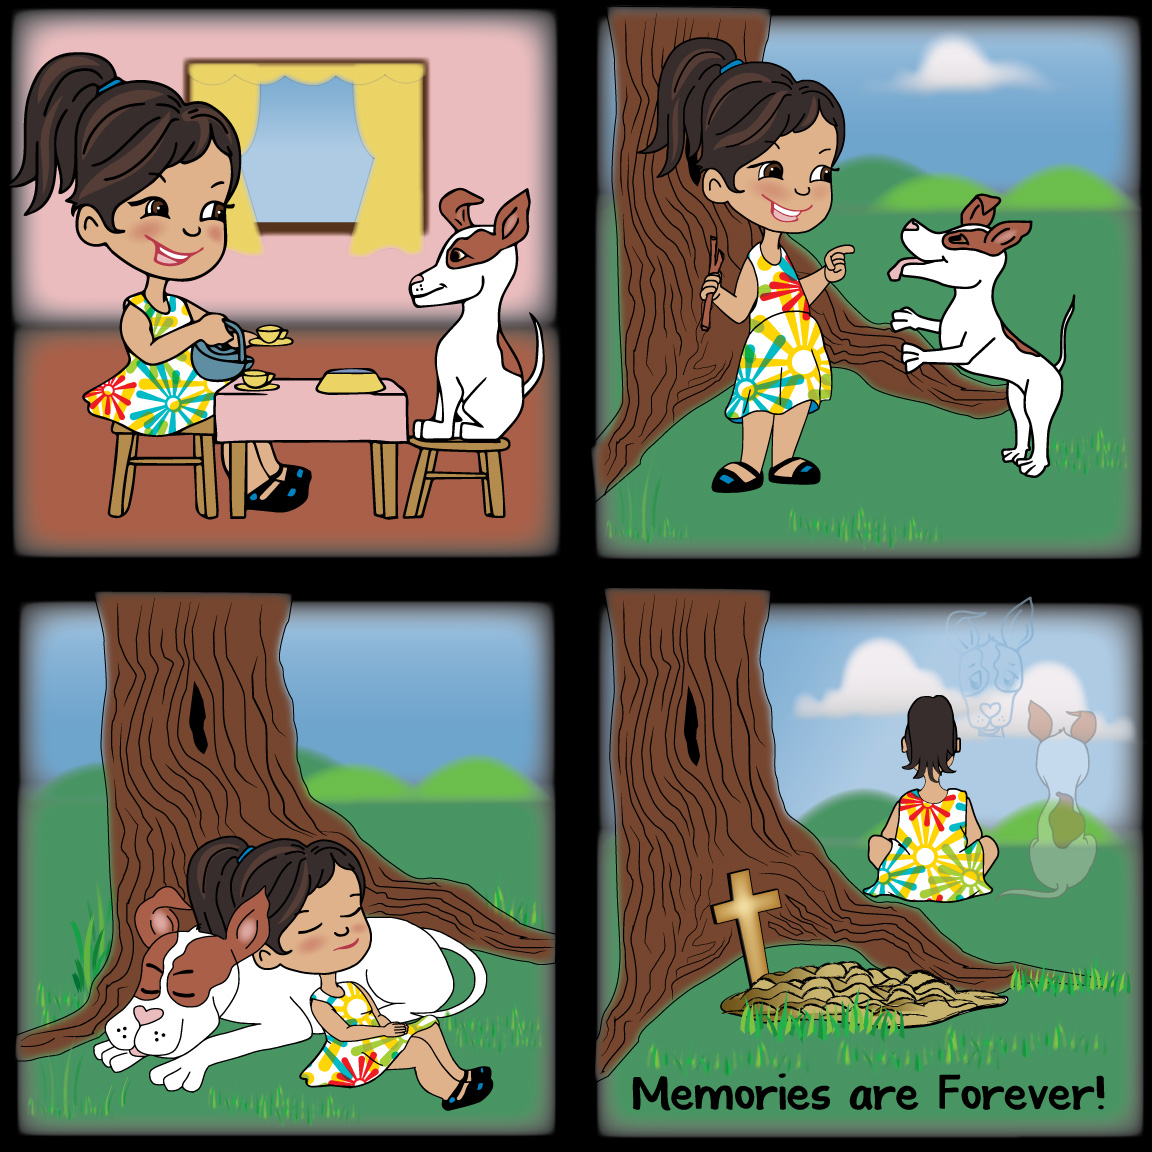 The life of a best friend and her dog from start to finish.